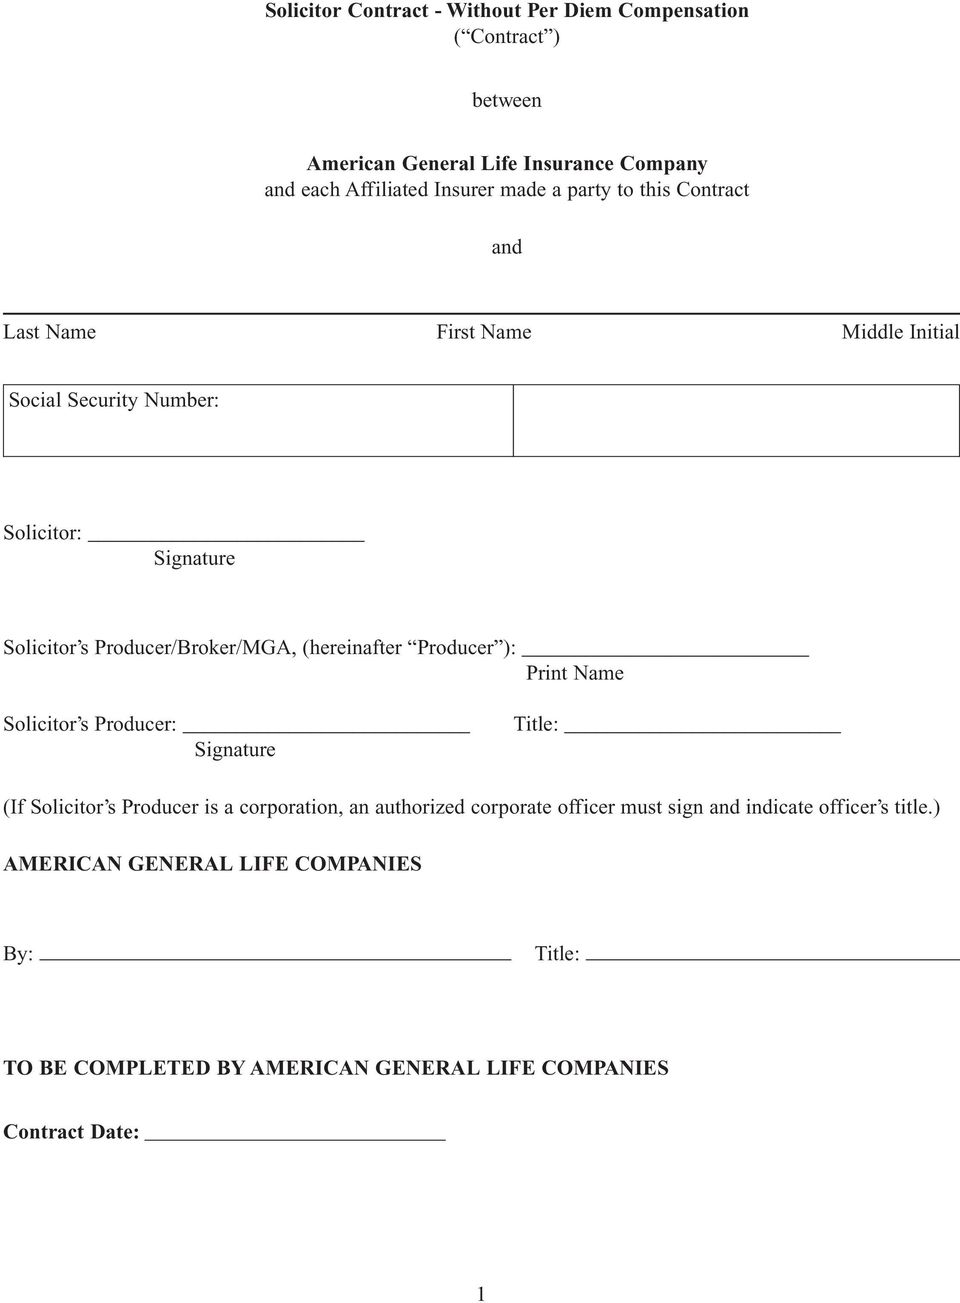 Agreement Solicitor Without Per Diem Compensation Pdf